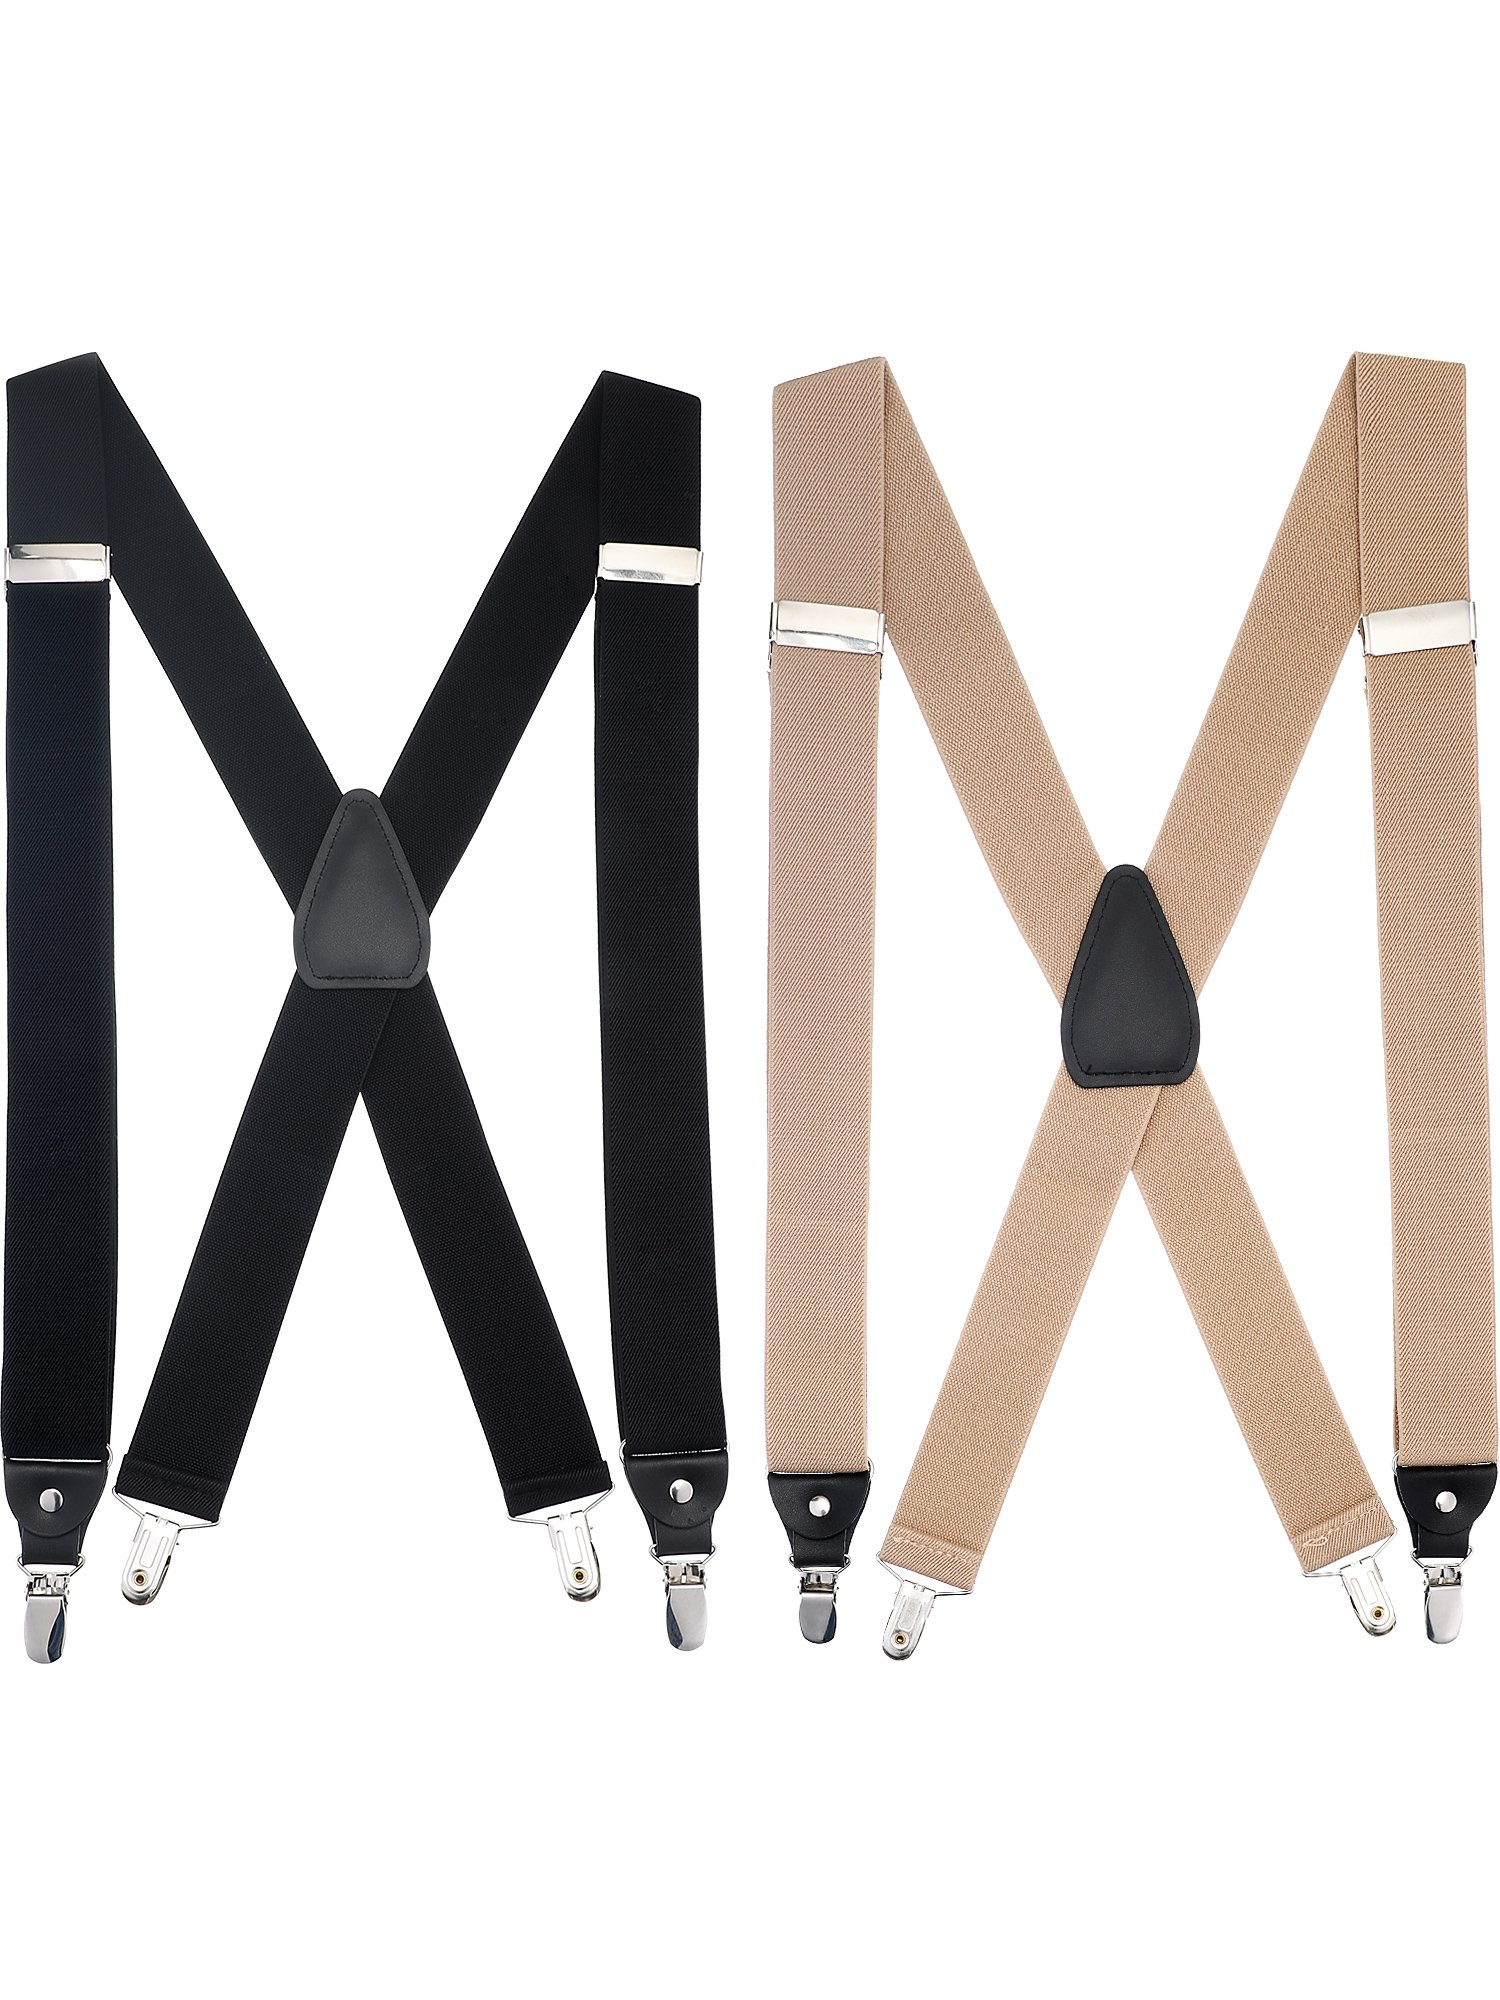 Boao 2 Pieces Utility Suspenders X Shape with 4 Clips Adjustable Elastic X-back Clips for Men (Black and Khaki) by BOAO